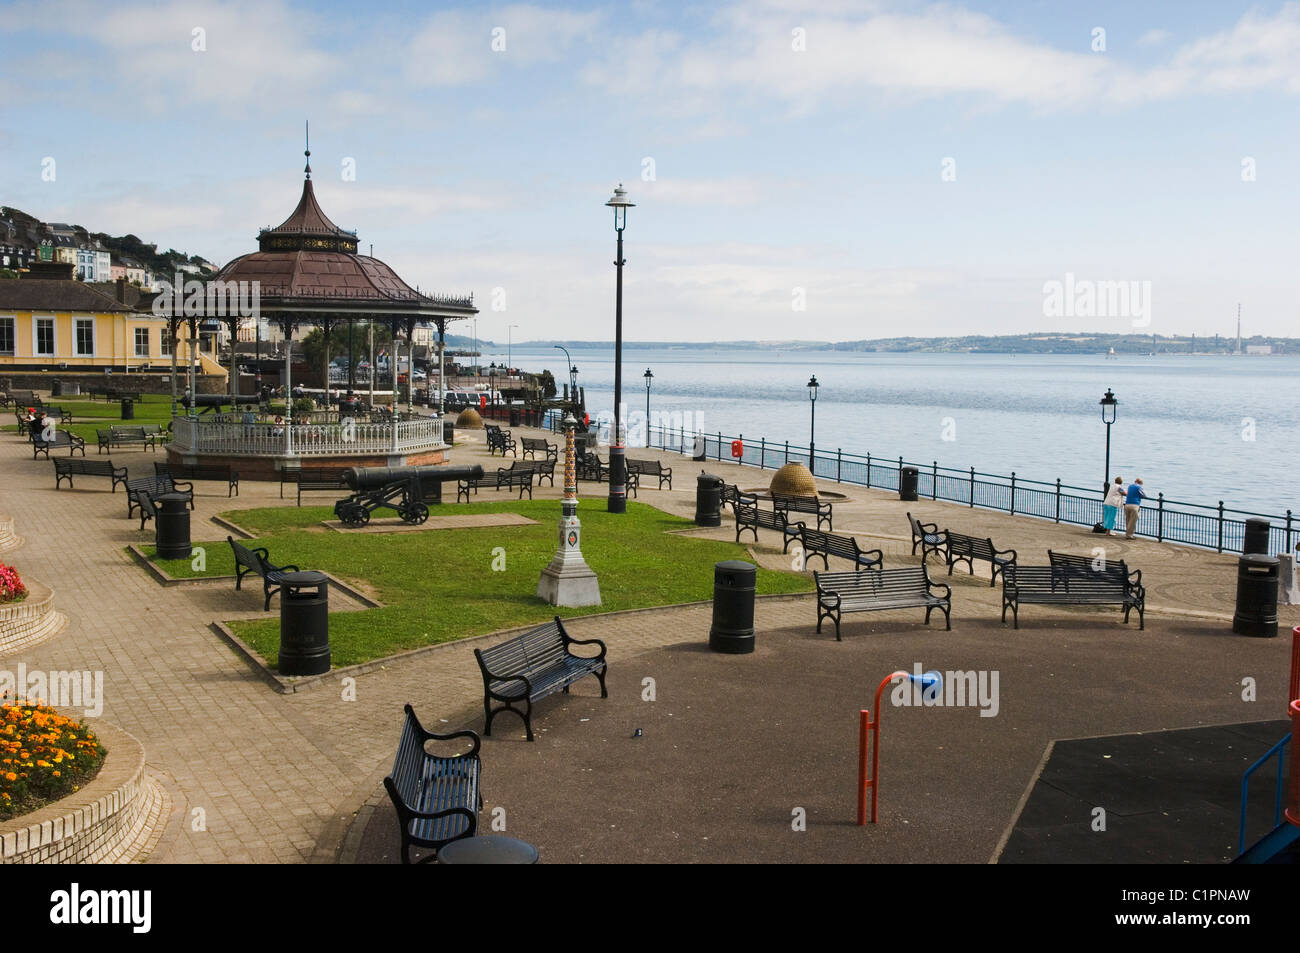 Republic of Ireland, County Cork, Cobh, bandstand on promenade - Stock Image